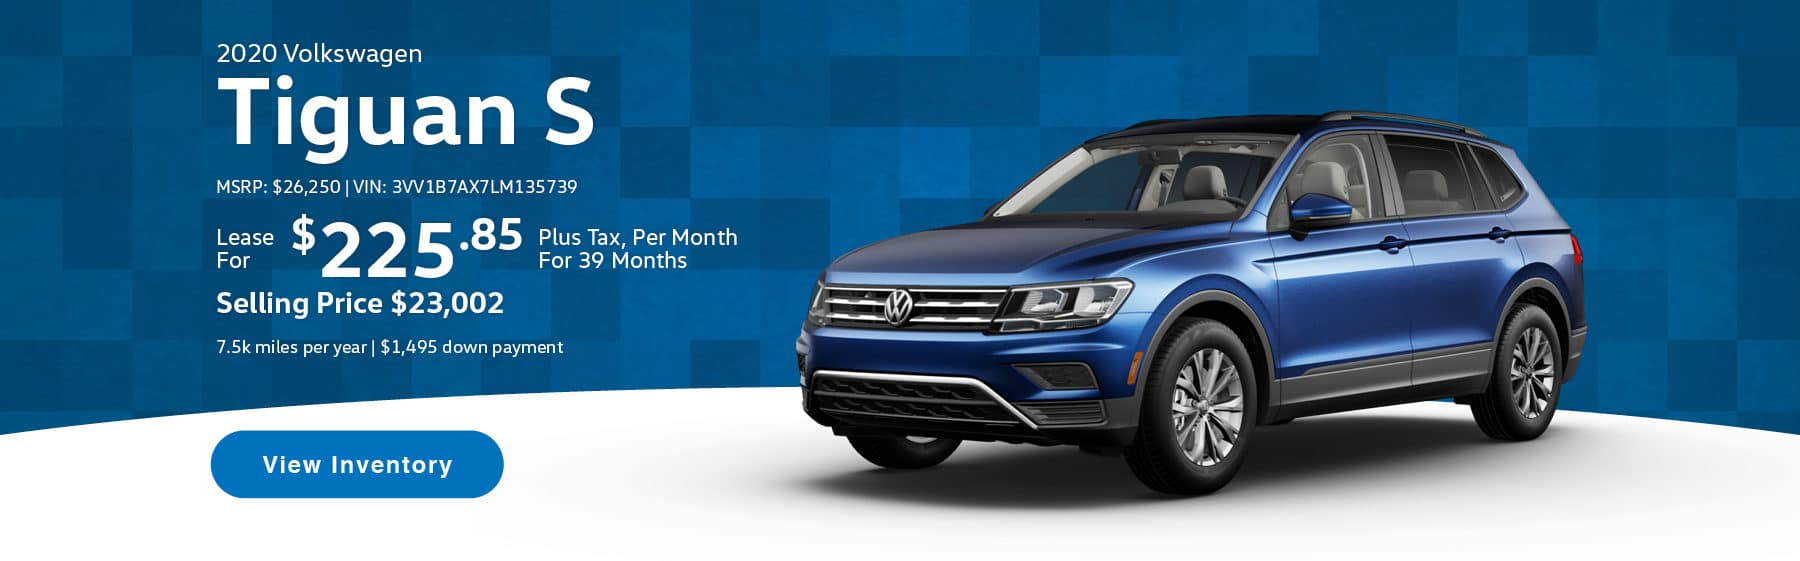 Lease the 2020 Tiguan S for $225.85 per month, plus tax for 39 months.